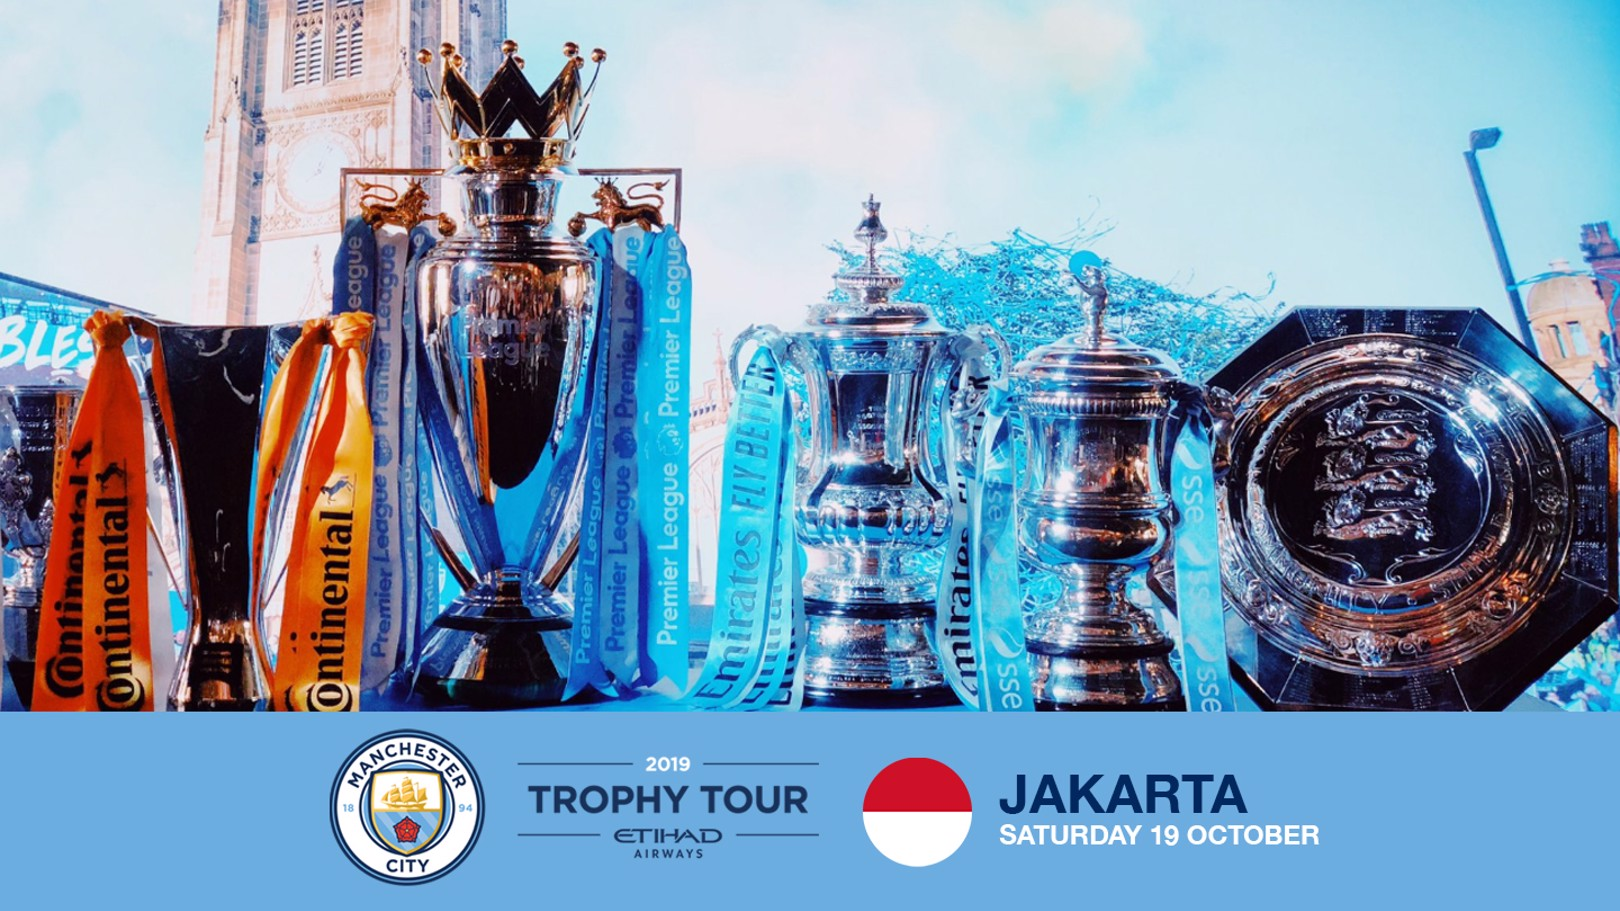 COMING SOON: We are taking our global trophy tour to Indonesia.